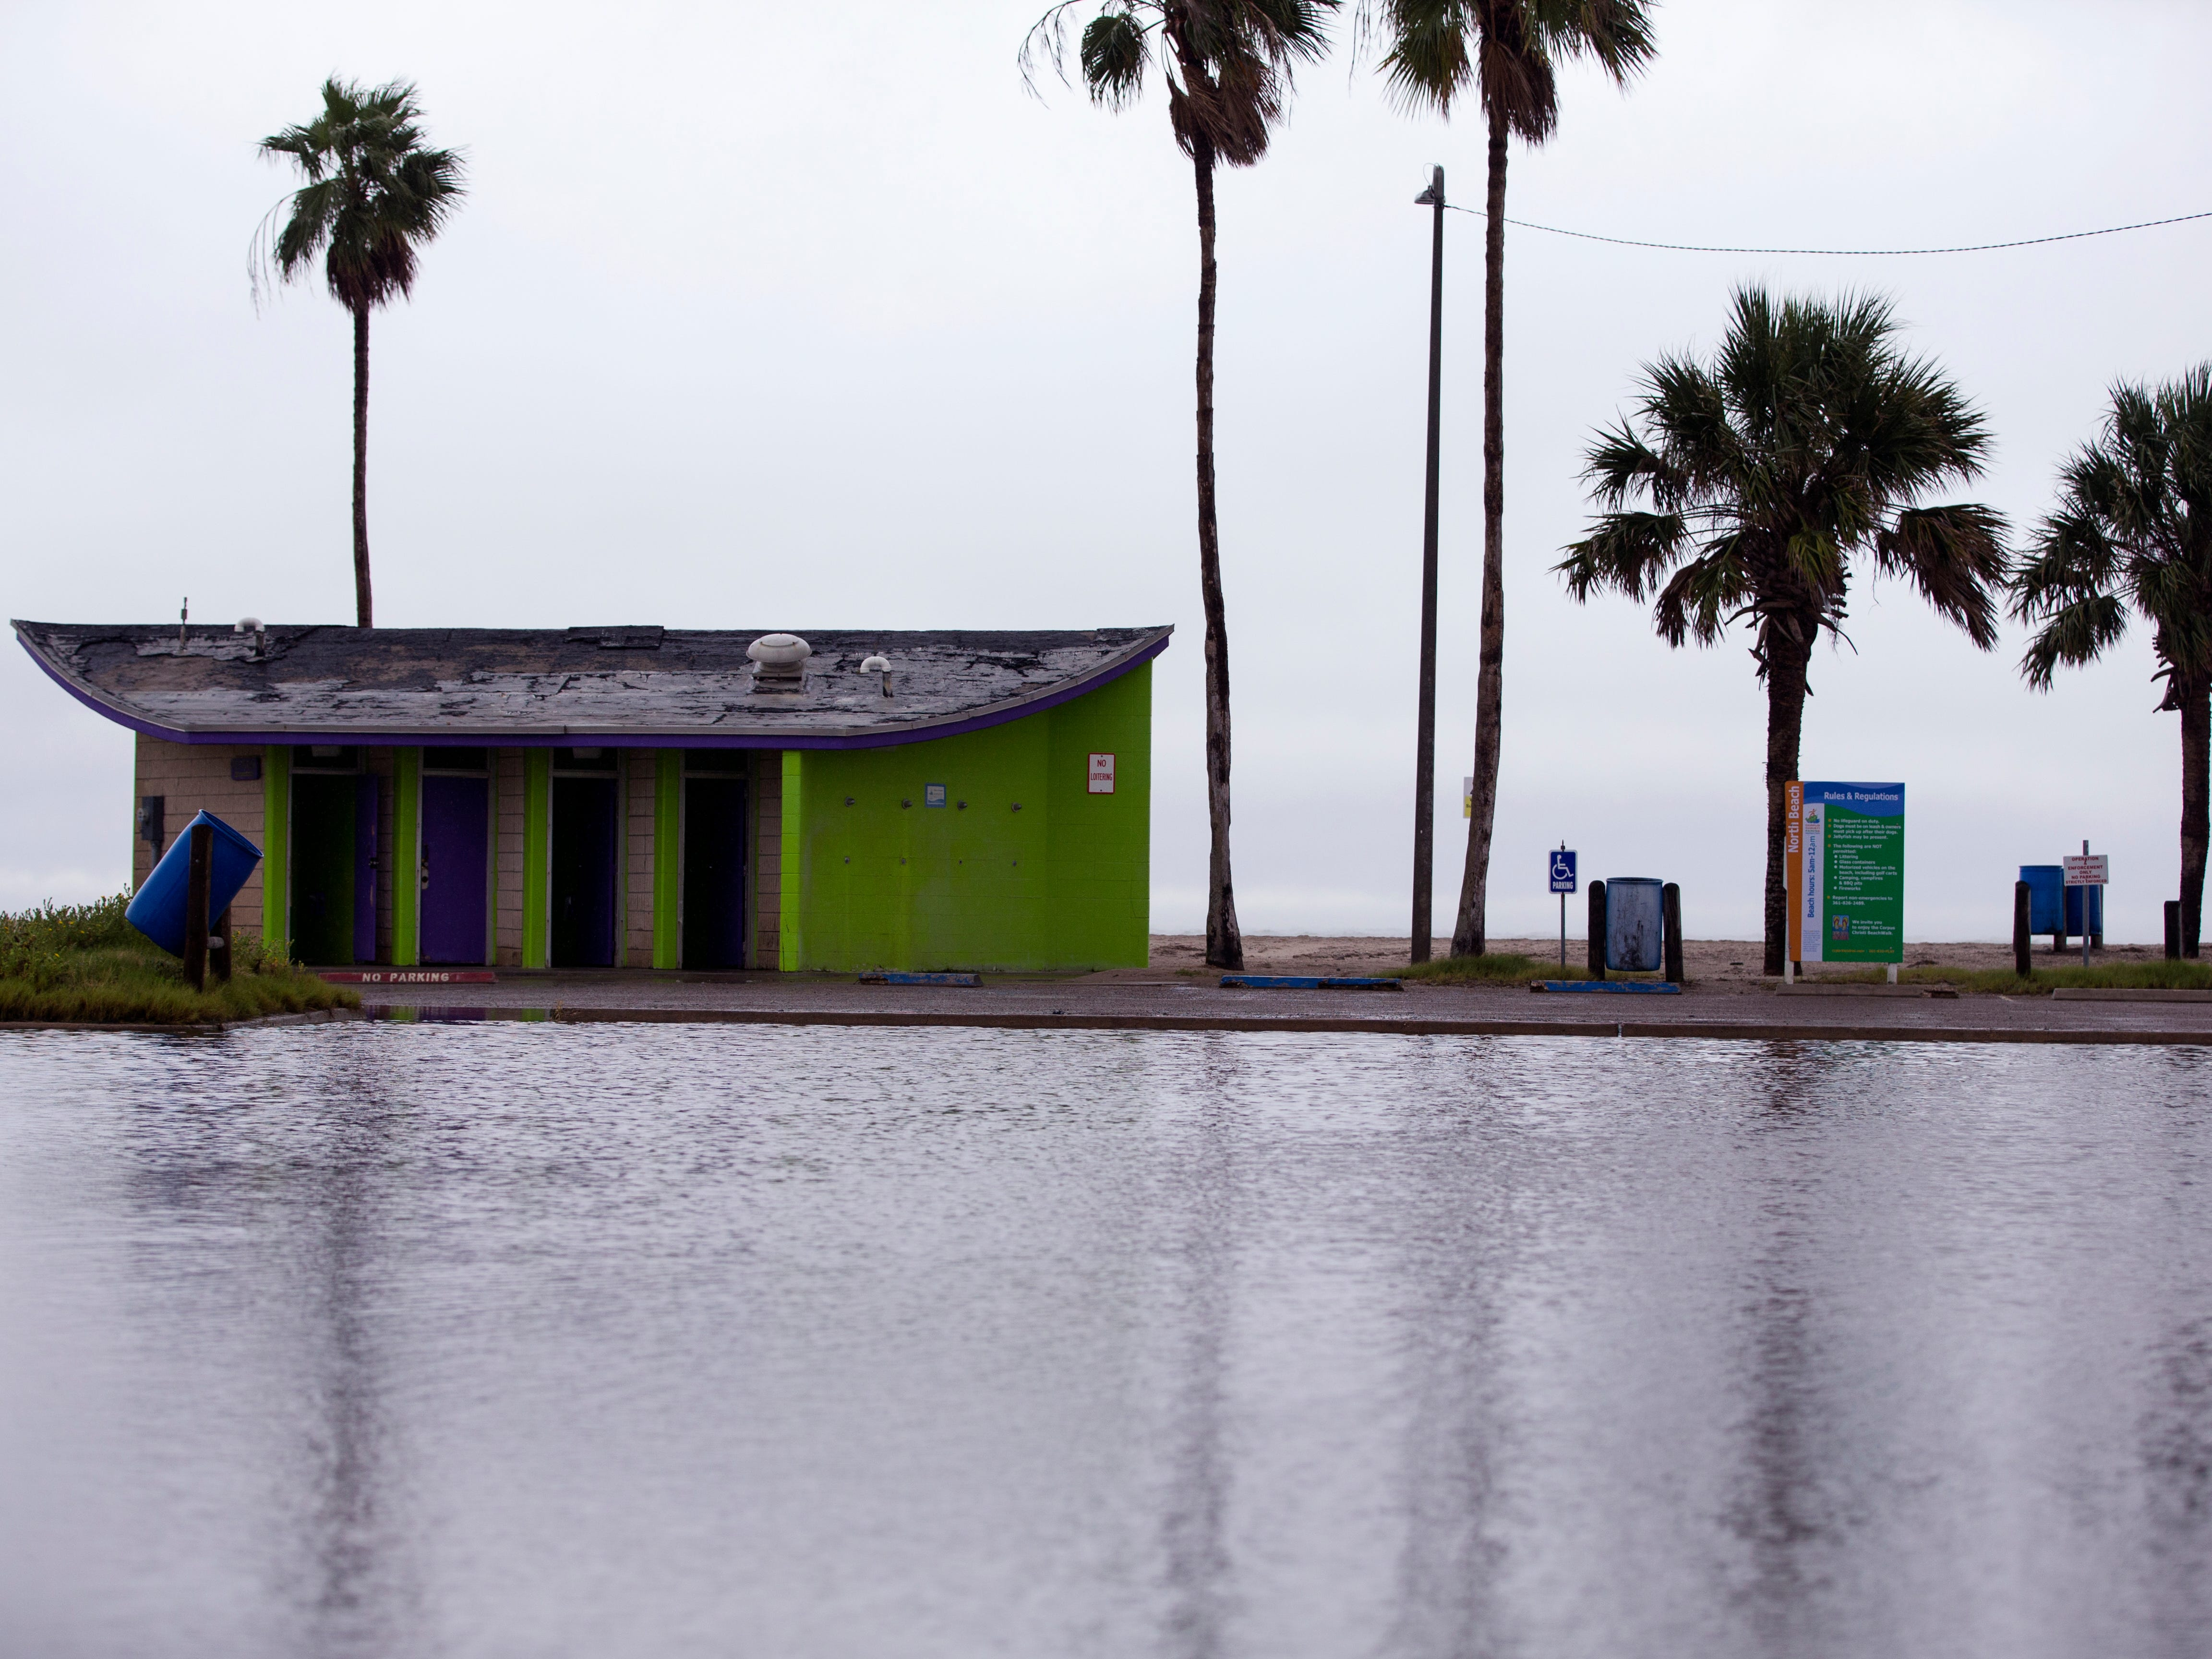 The roadway and parking lot next to these bathrooms on North Beach were flooded as a cold front and rain moved through the area on Monday, October 15, 2018.